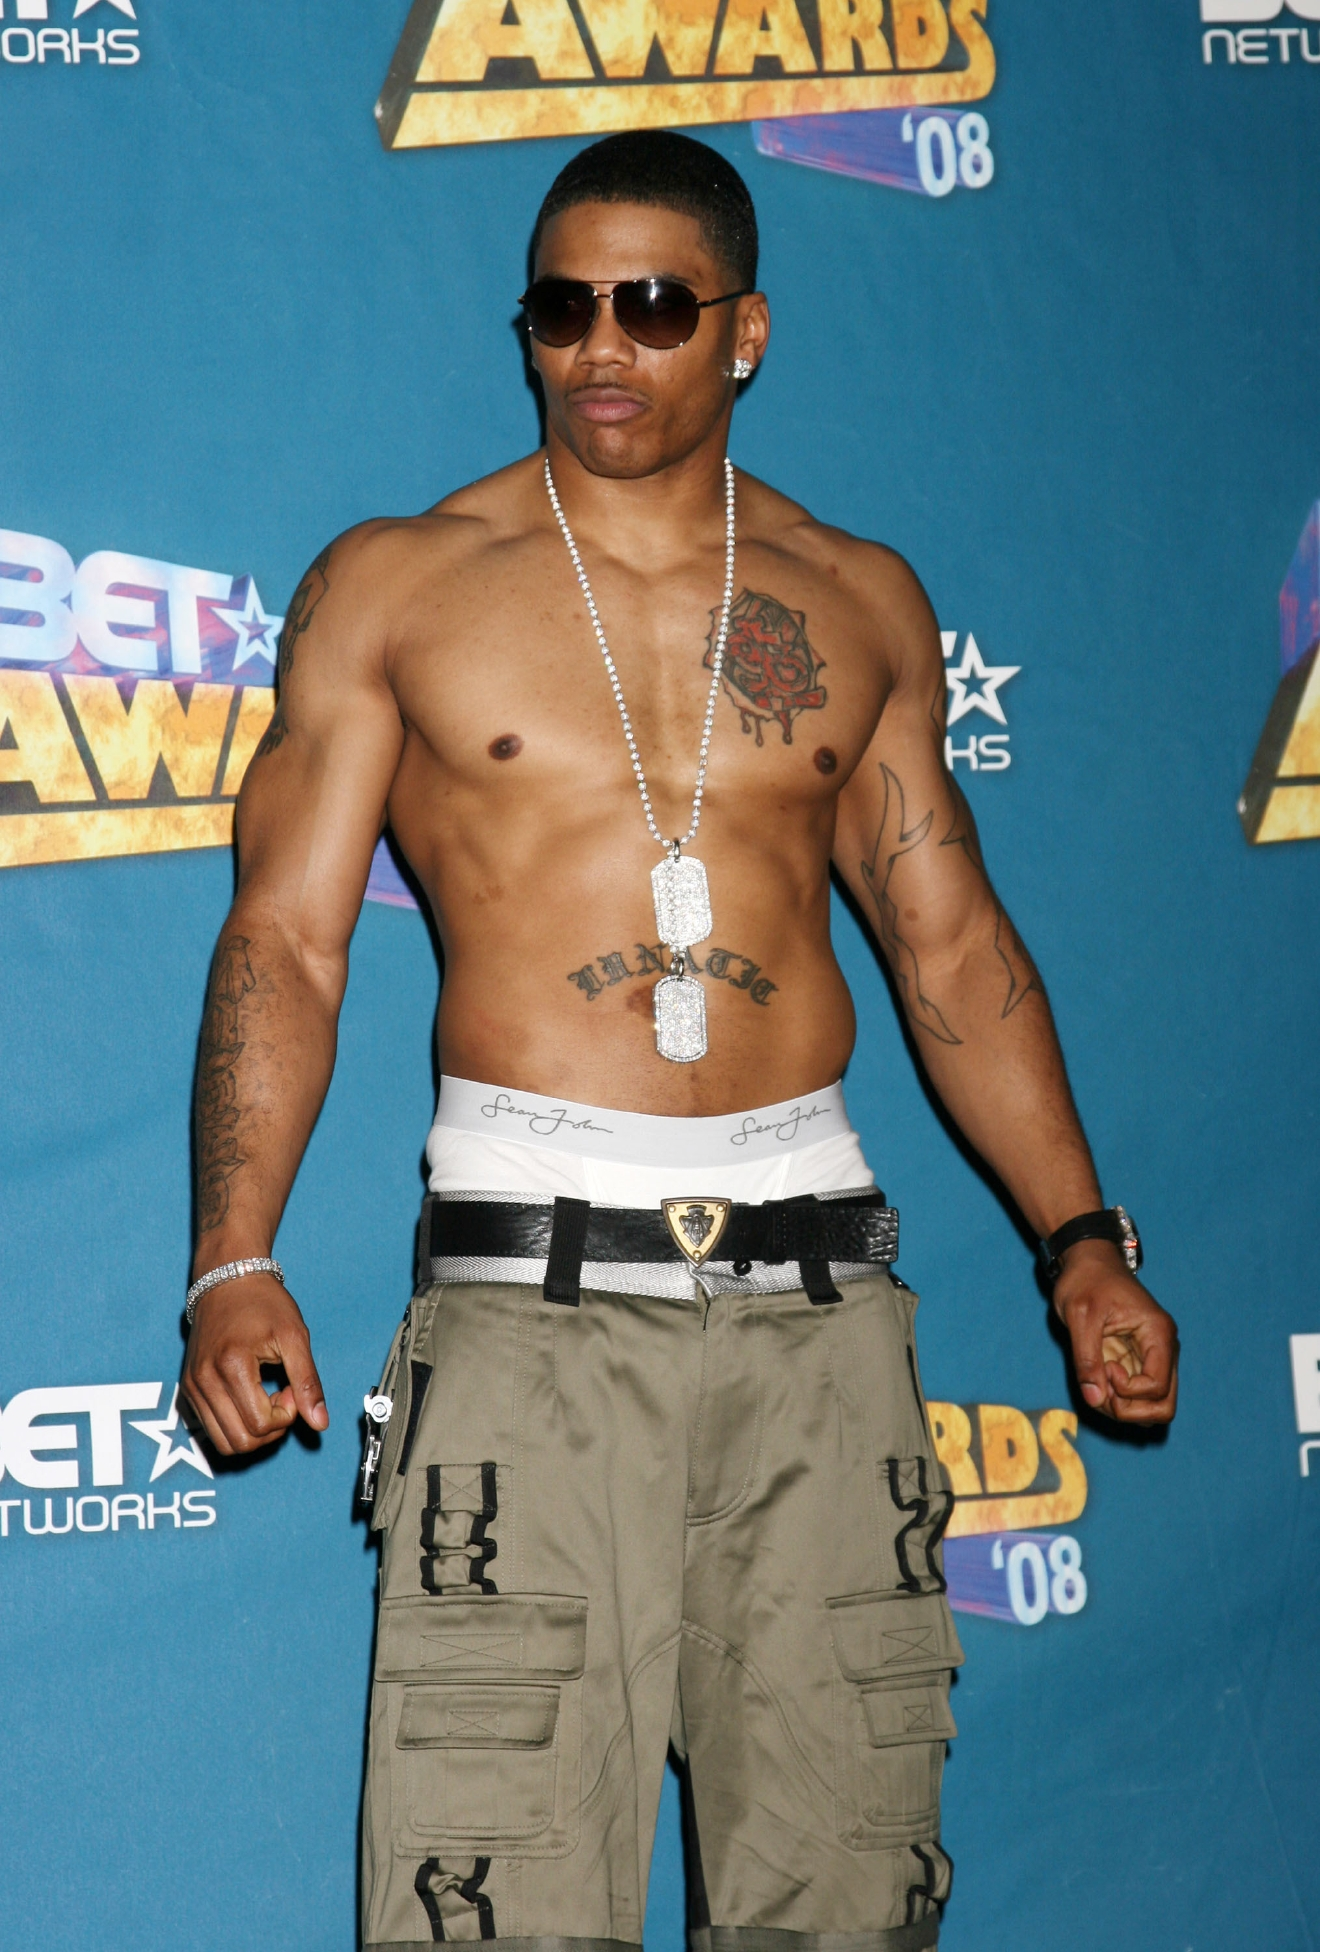 Nelly BET Awards 2008 at the Shrine Auditorium - press room Los Angeles, California - 24.06.08  Featuring: Nelly Where: United States When: 24 Jun 2008 Credit: Nikki Nelson/ WENN